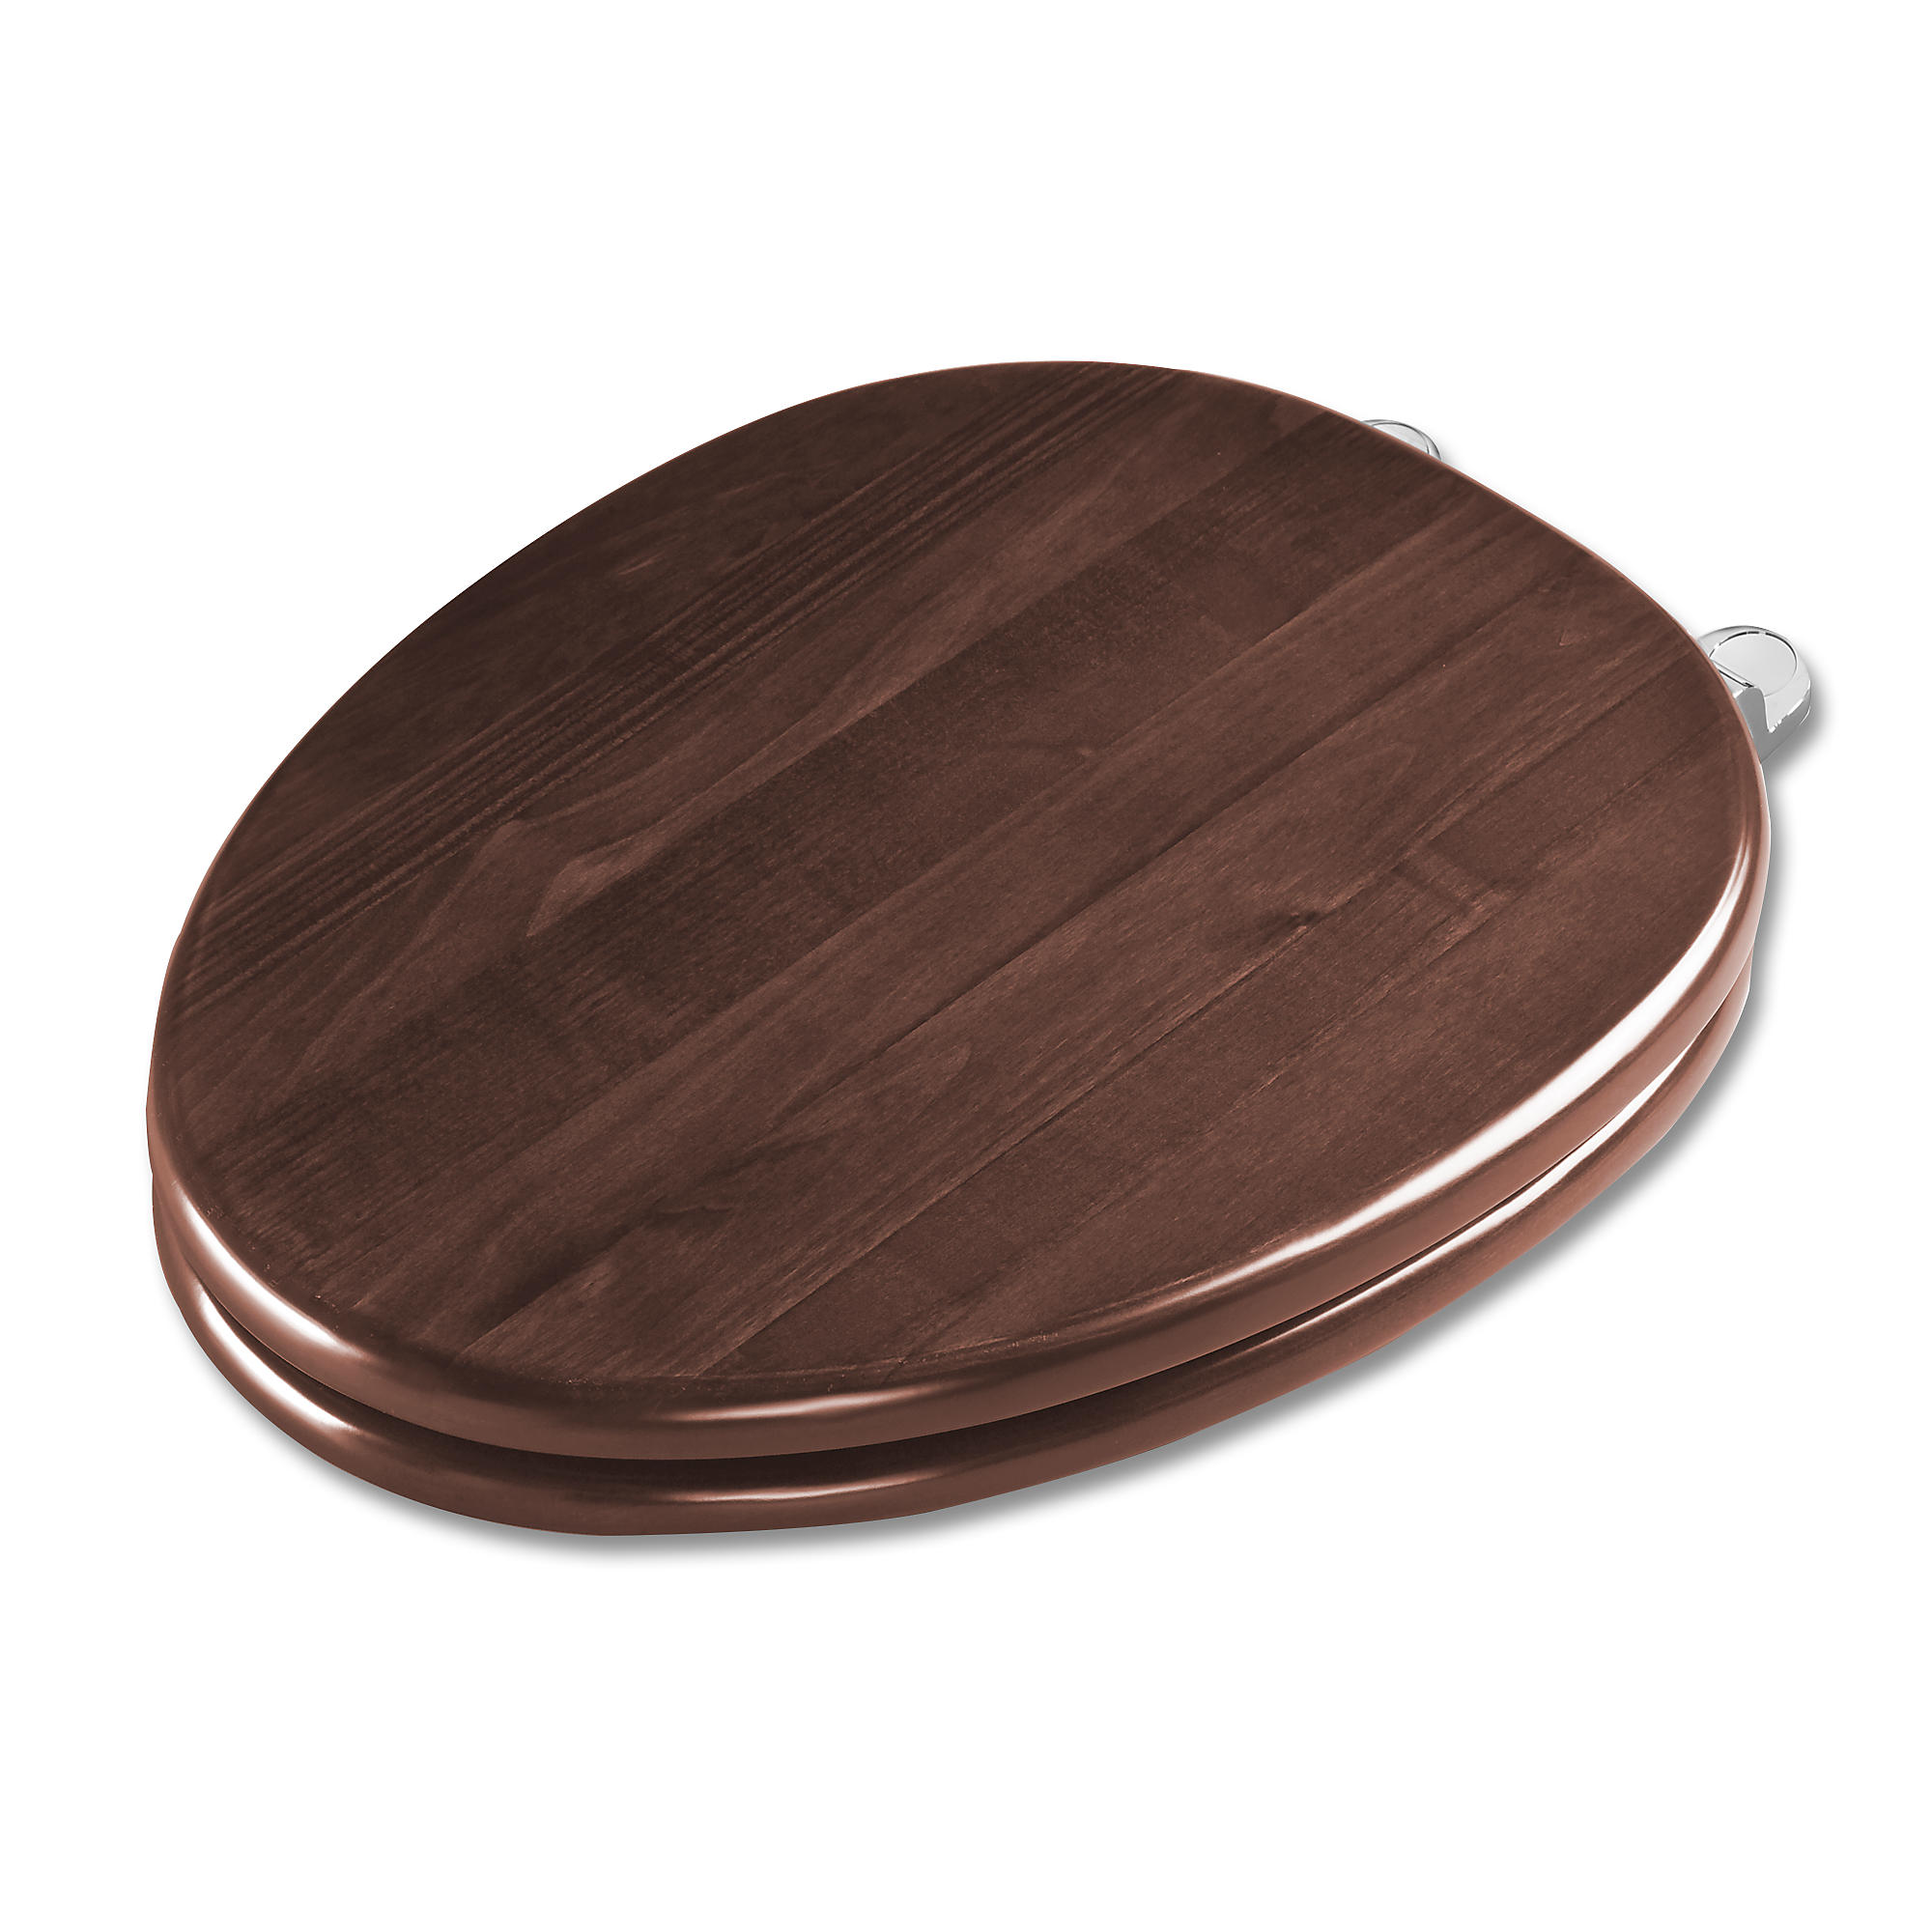 Ss303 cp maple softclose  toilet seat   round 0